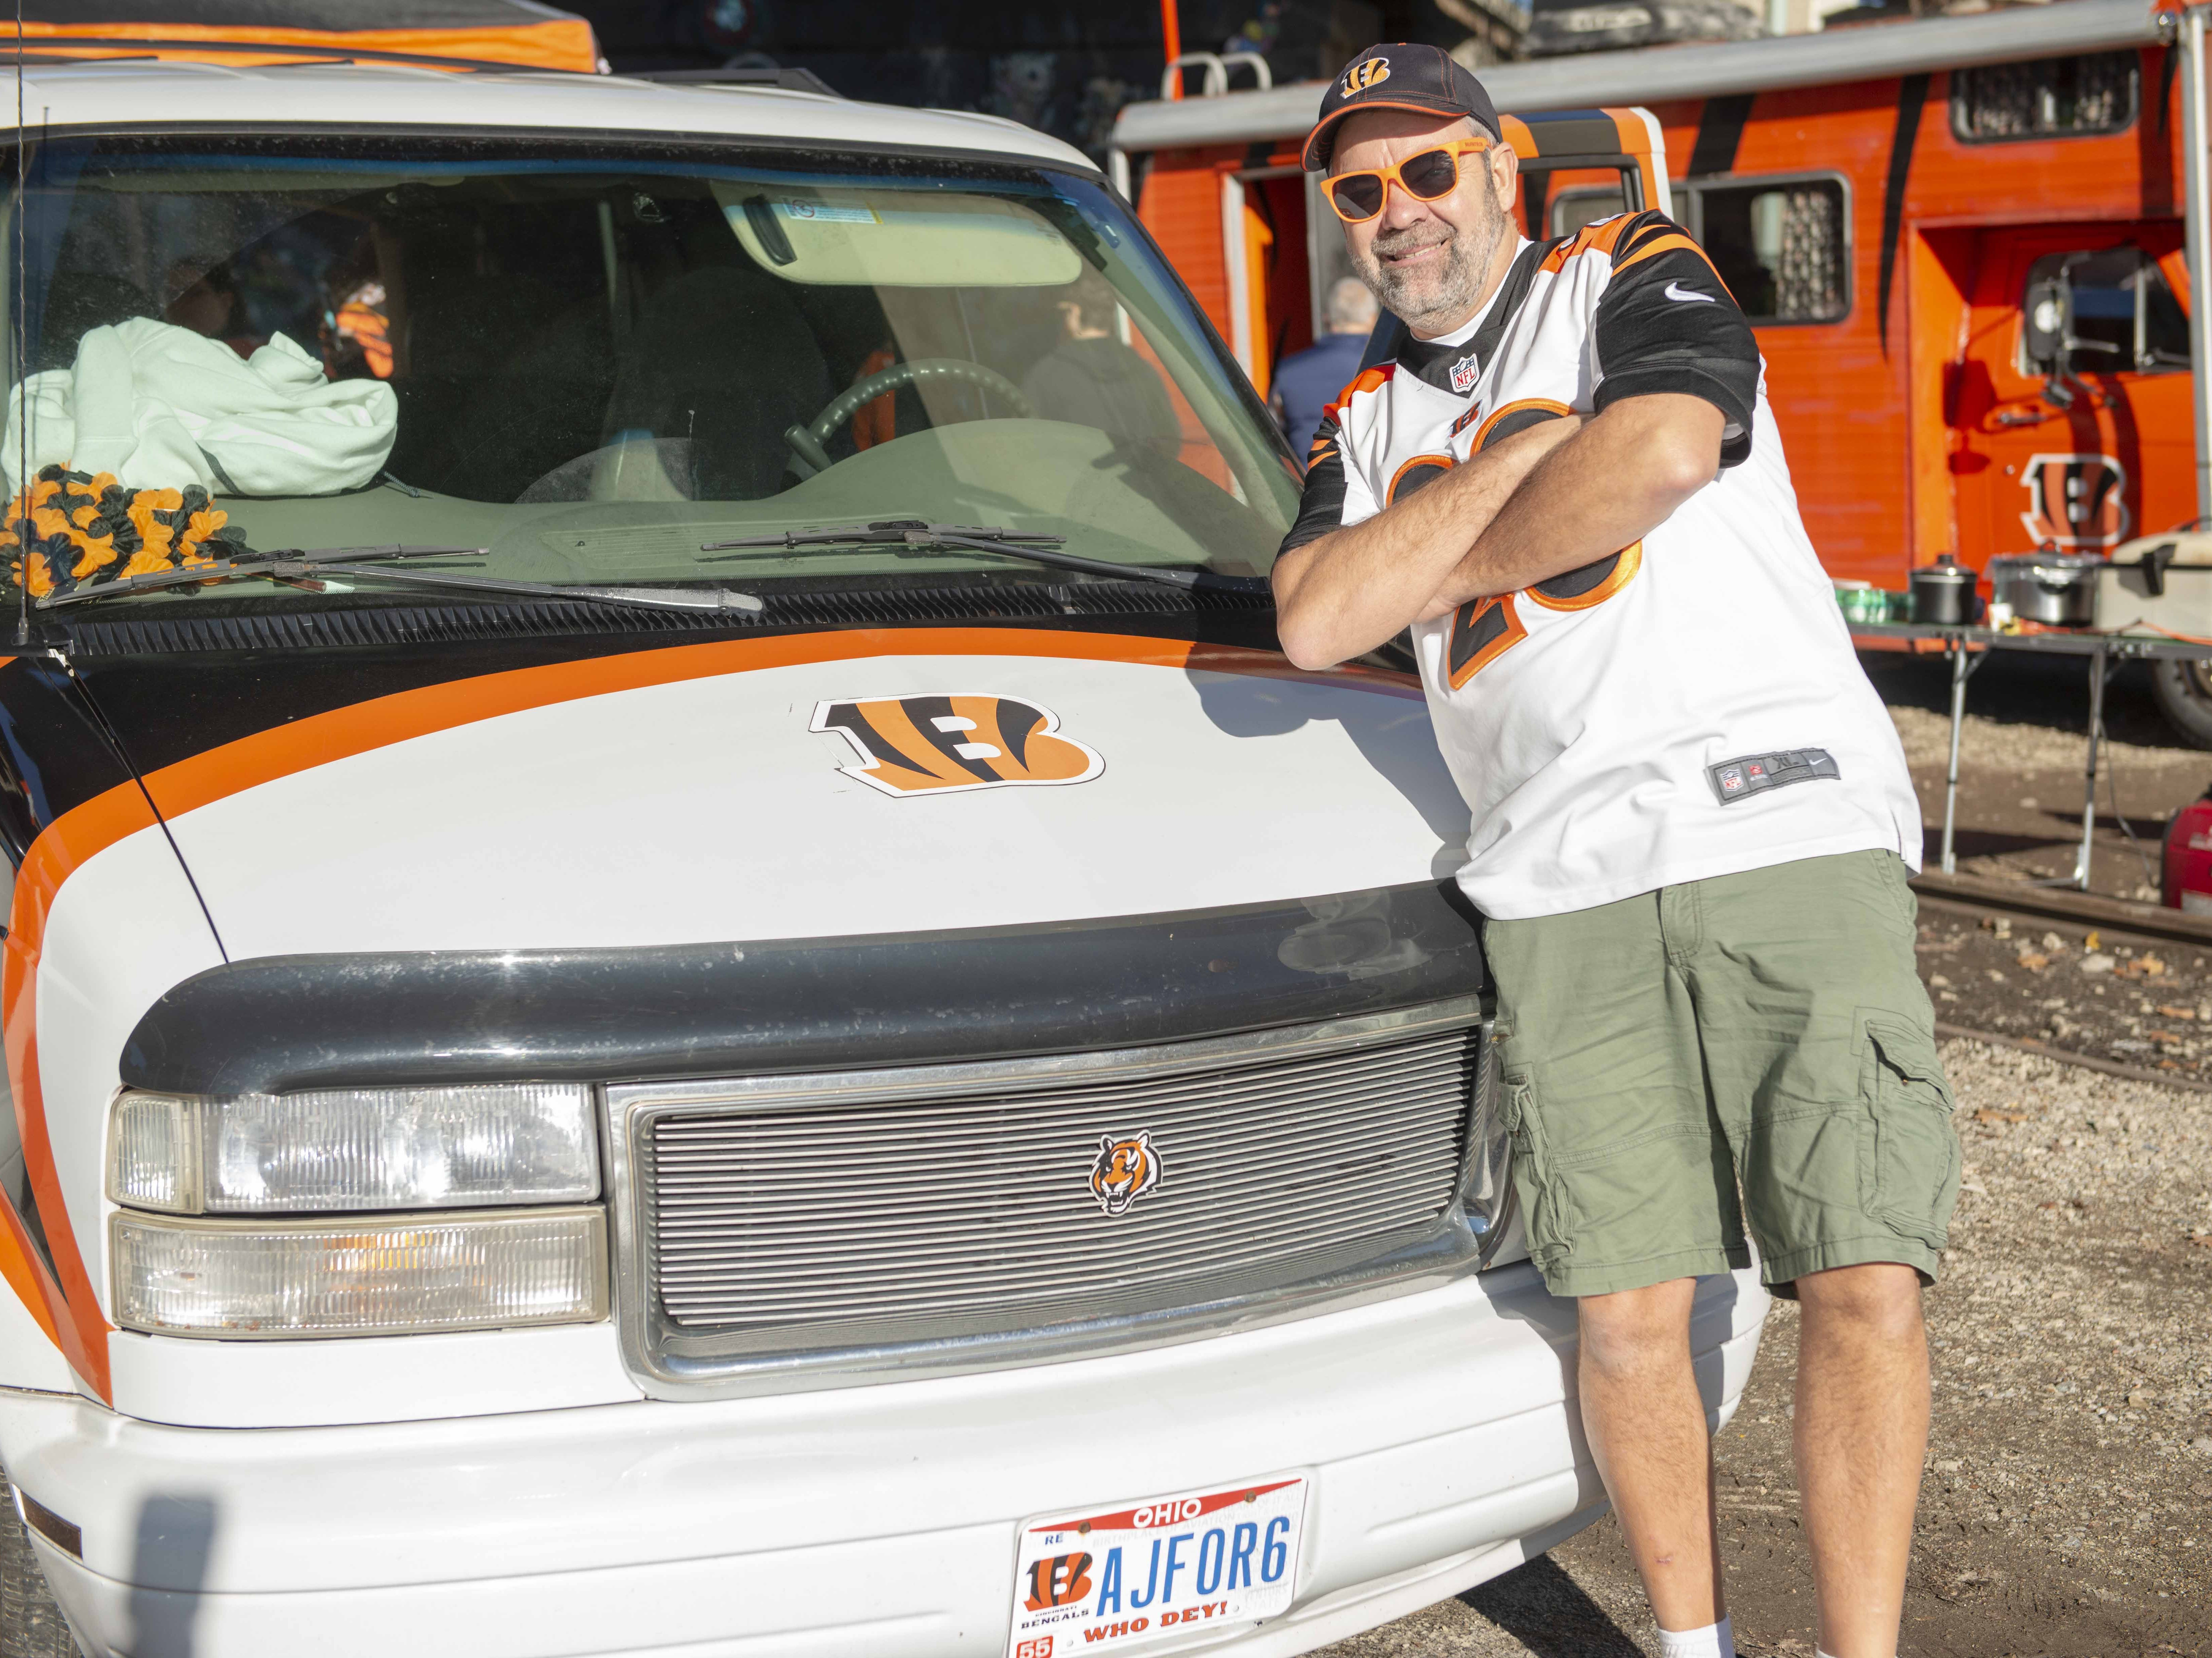 Cincinnati Bengals fans showed up for tailgating parties as the Cincinnati Bengals hosted the Denver Broncos at Paul Brown Stadium Sunday, December 2, 2018. Ron Patton of Cass Town, Ohio, with the custom Bengal paint job on his van.